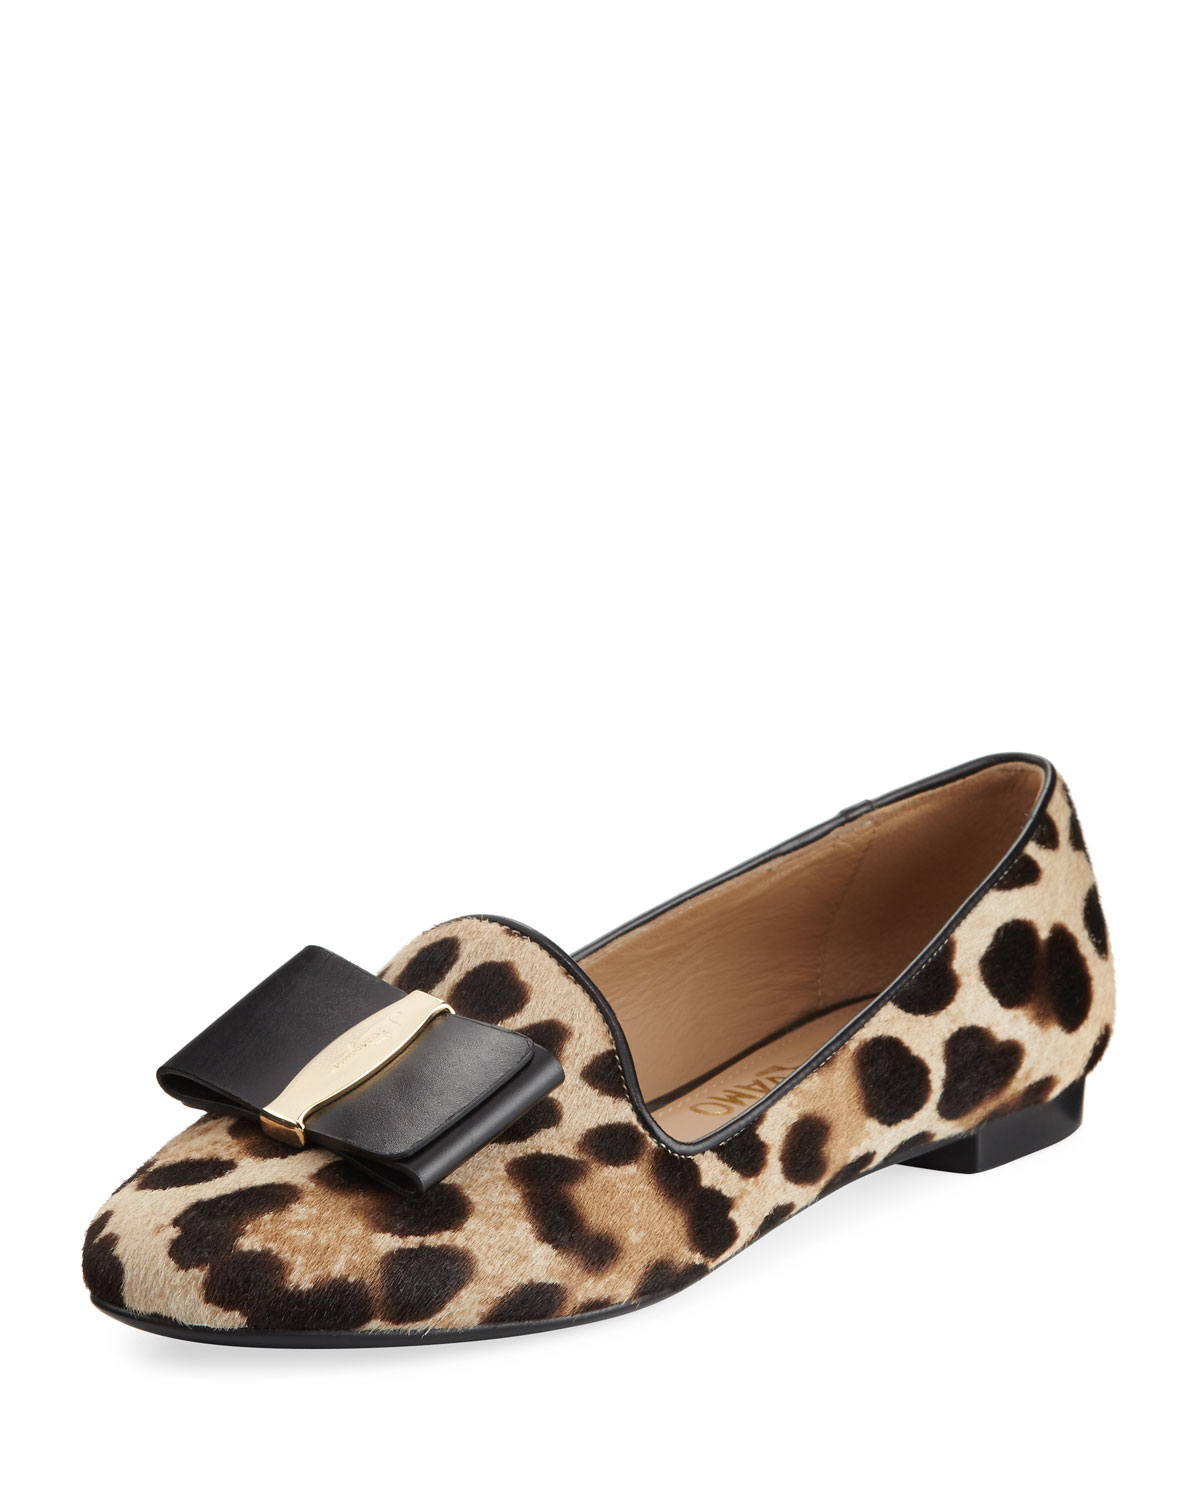 Salvatore Ferragamo Pony Hair Round-Toe Flats